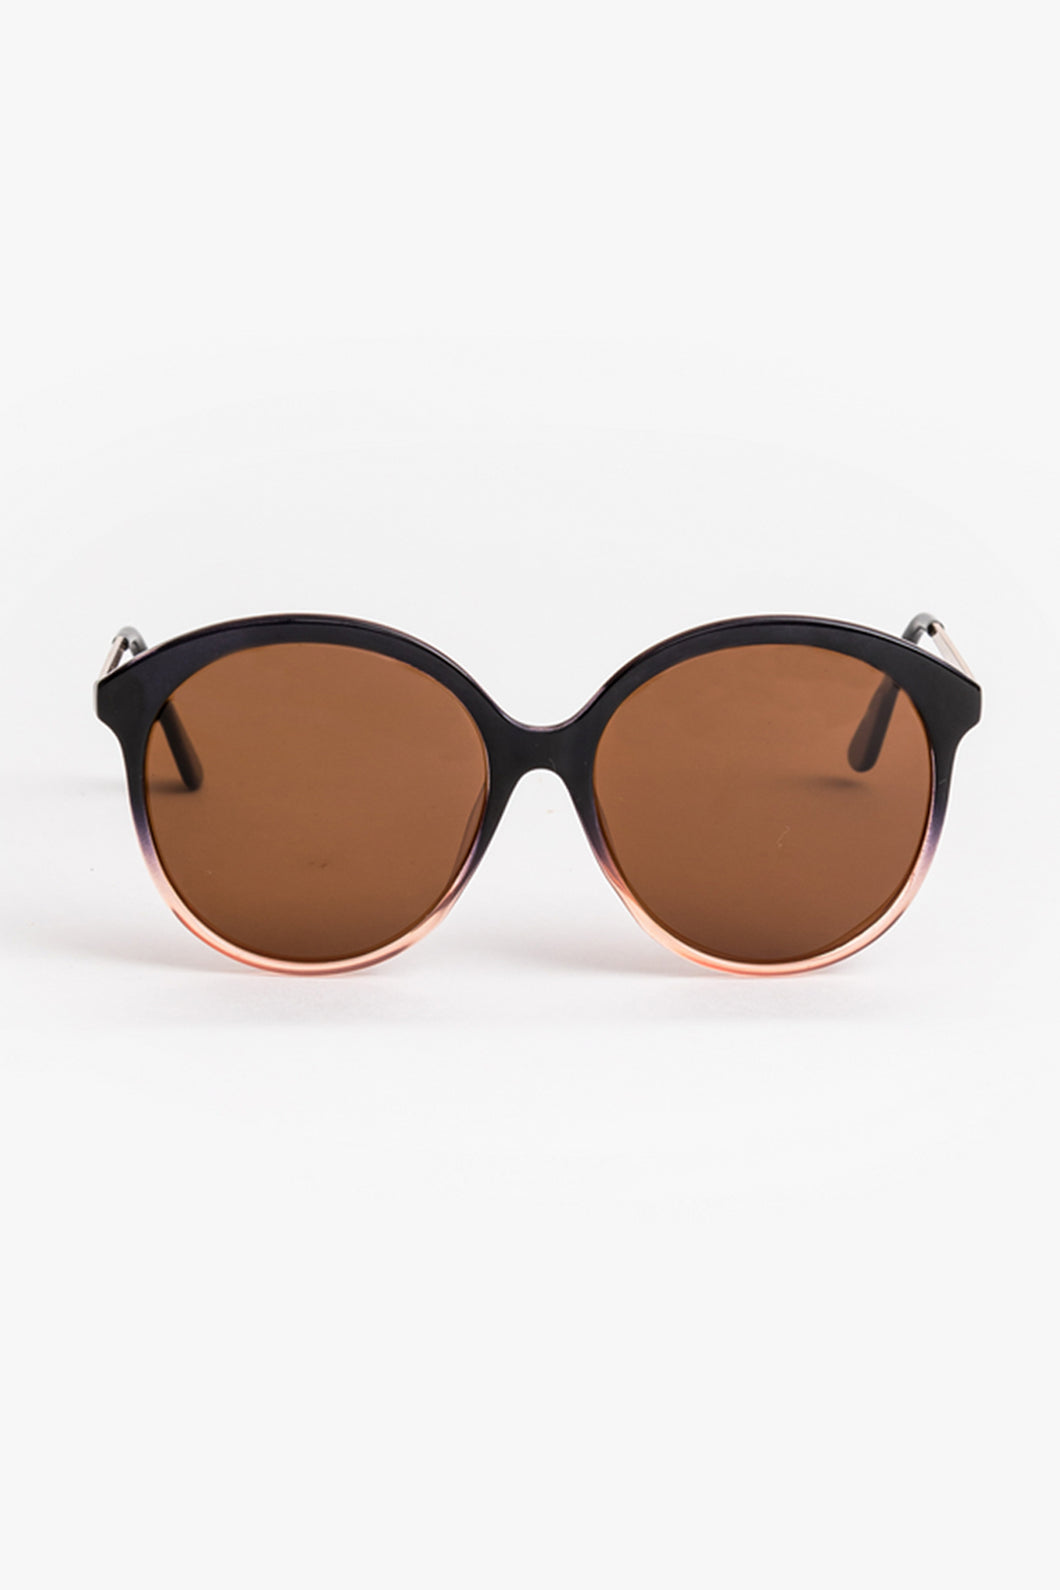 Poppy Black and Pink Sunglasses